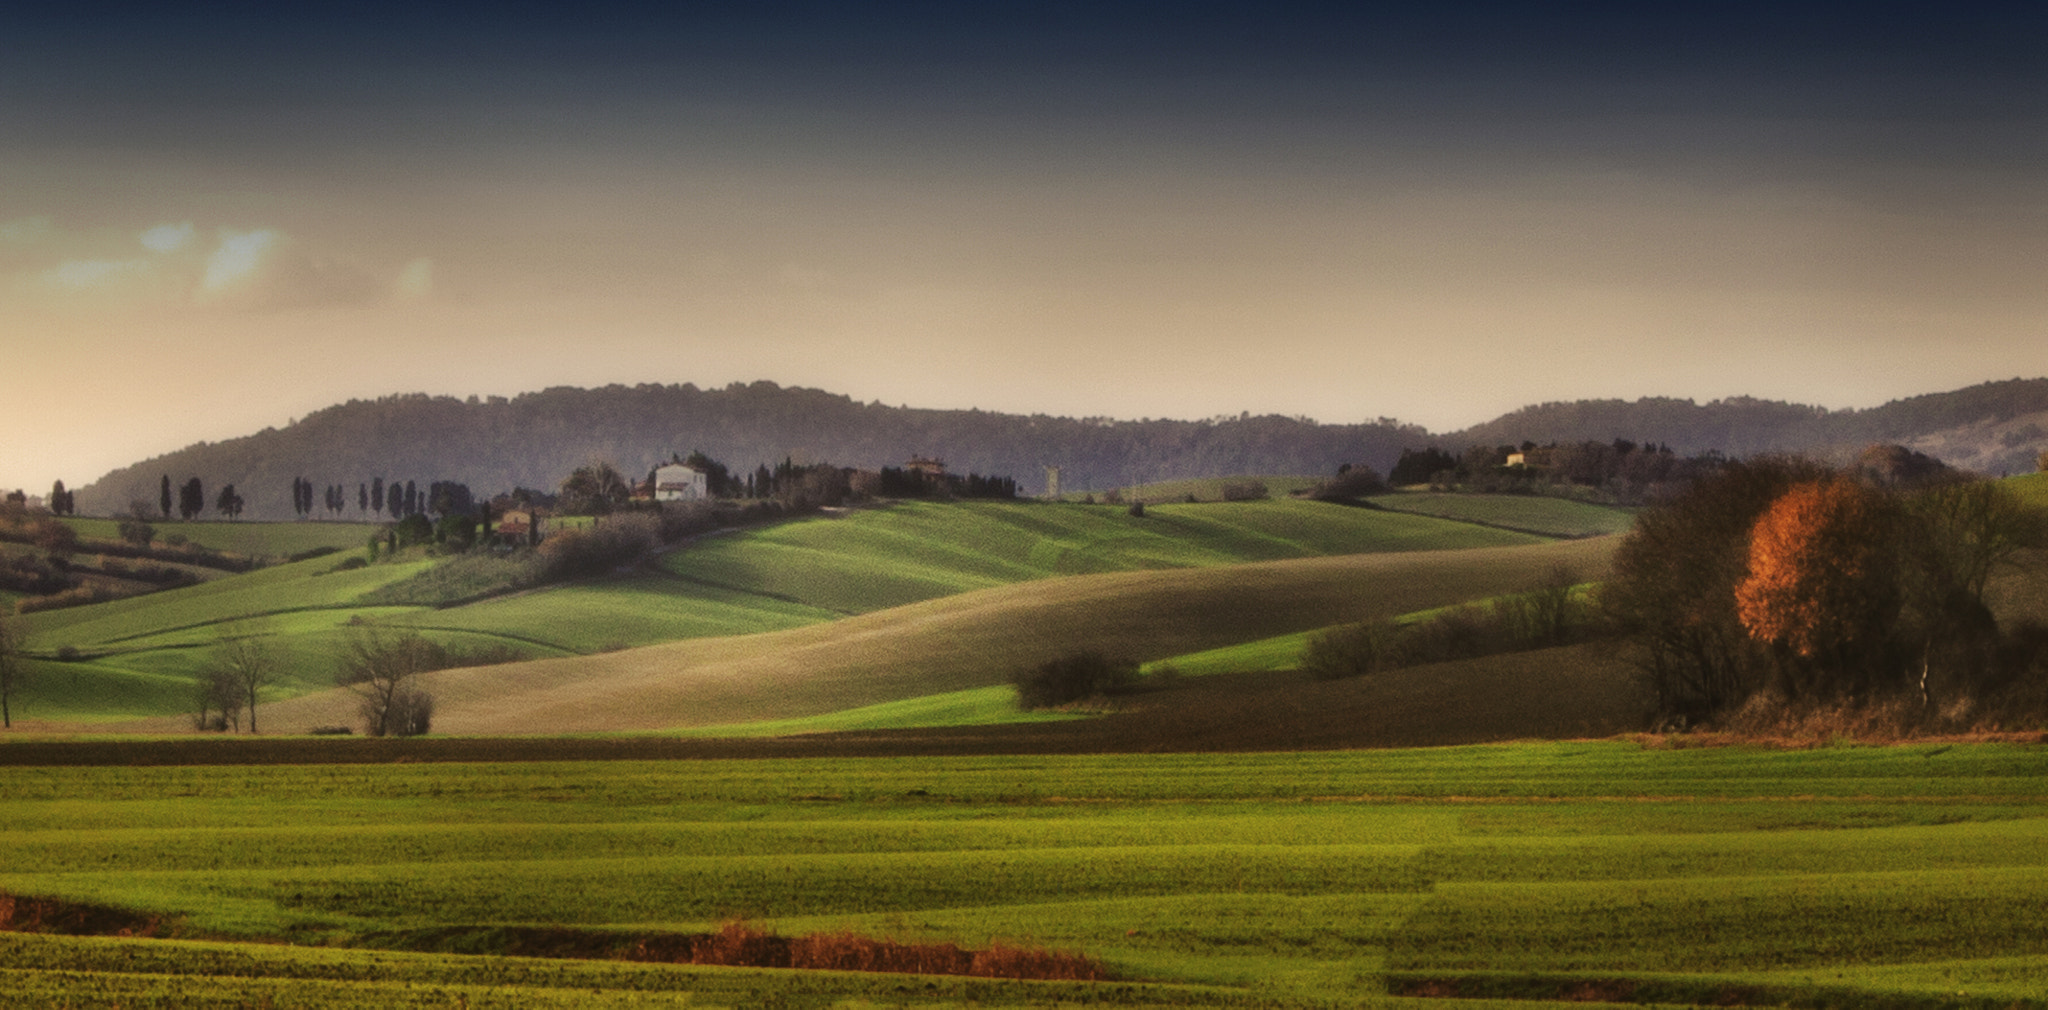 Photograph Tuscany hills by Antonio  longobardi on 500px